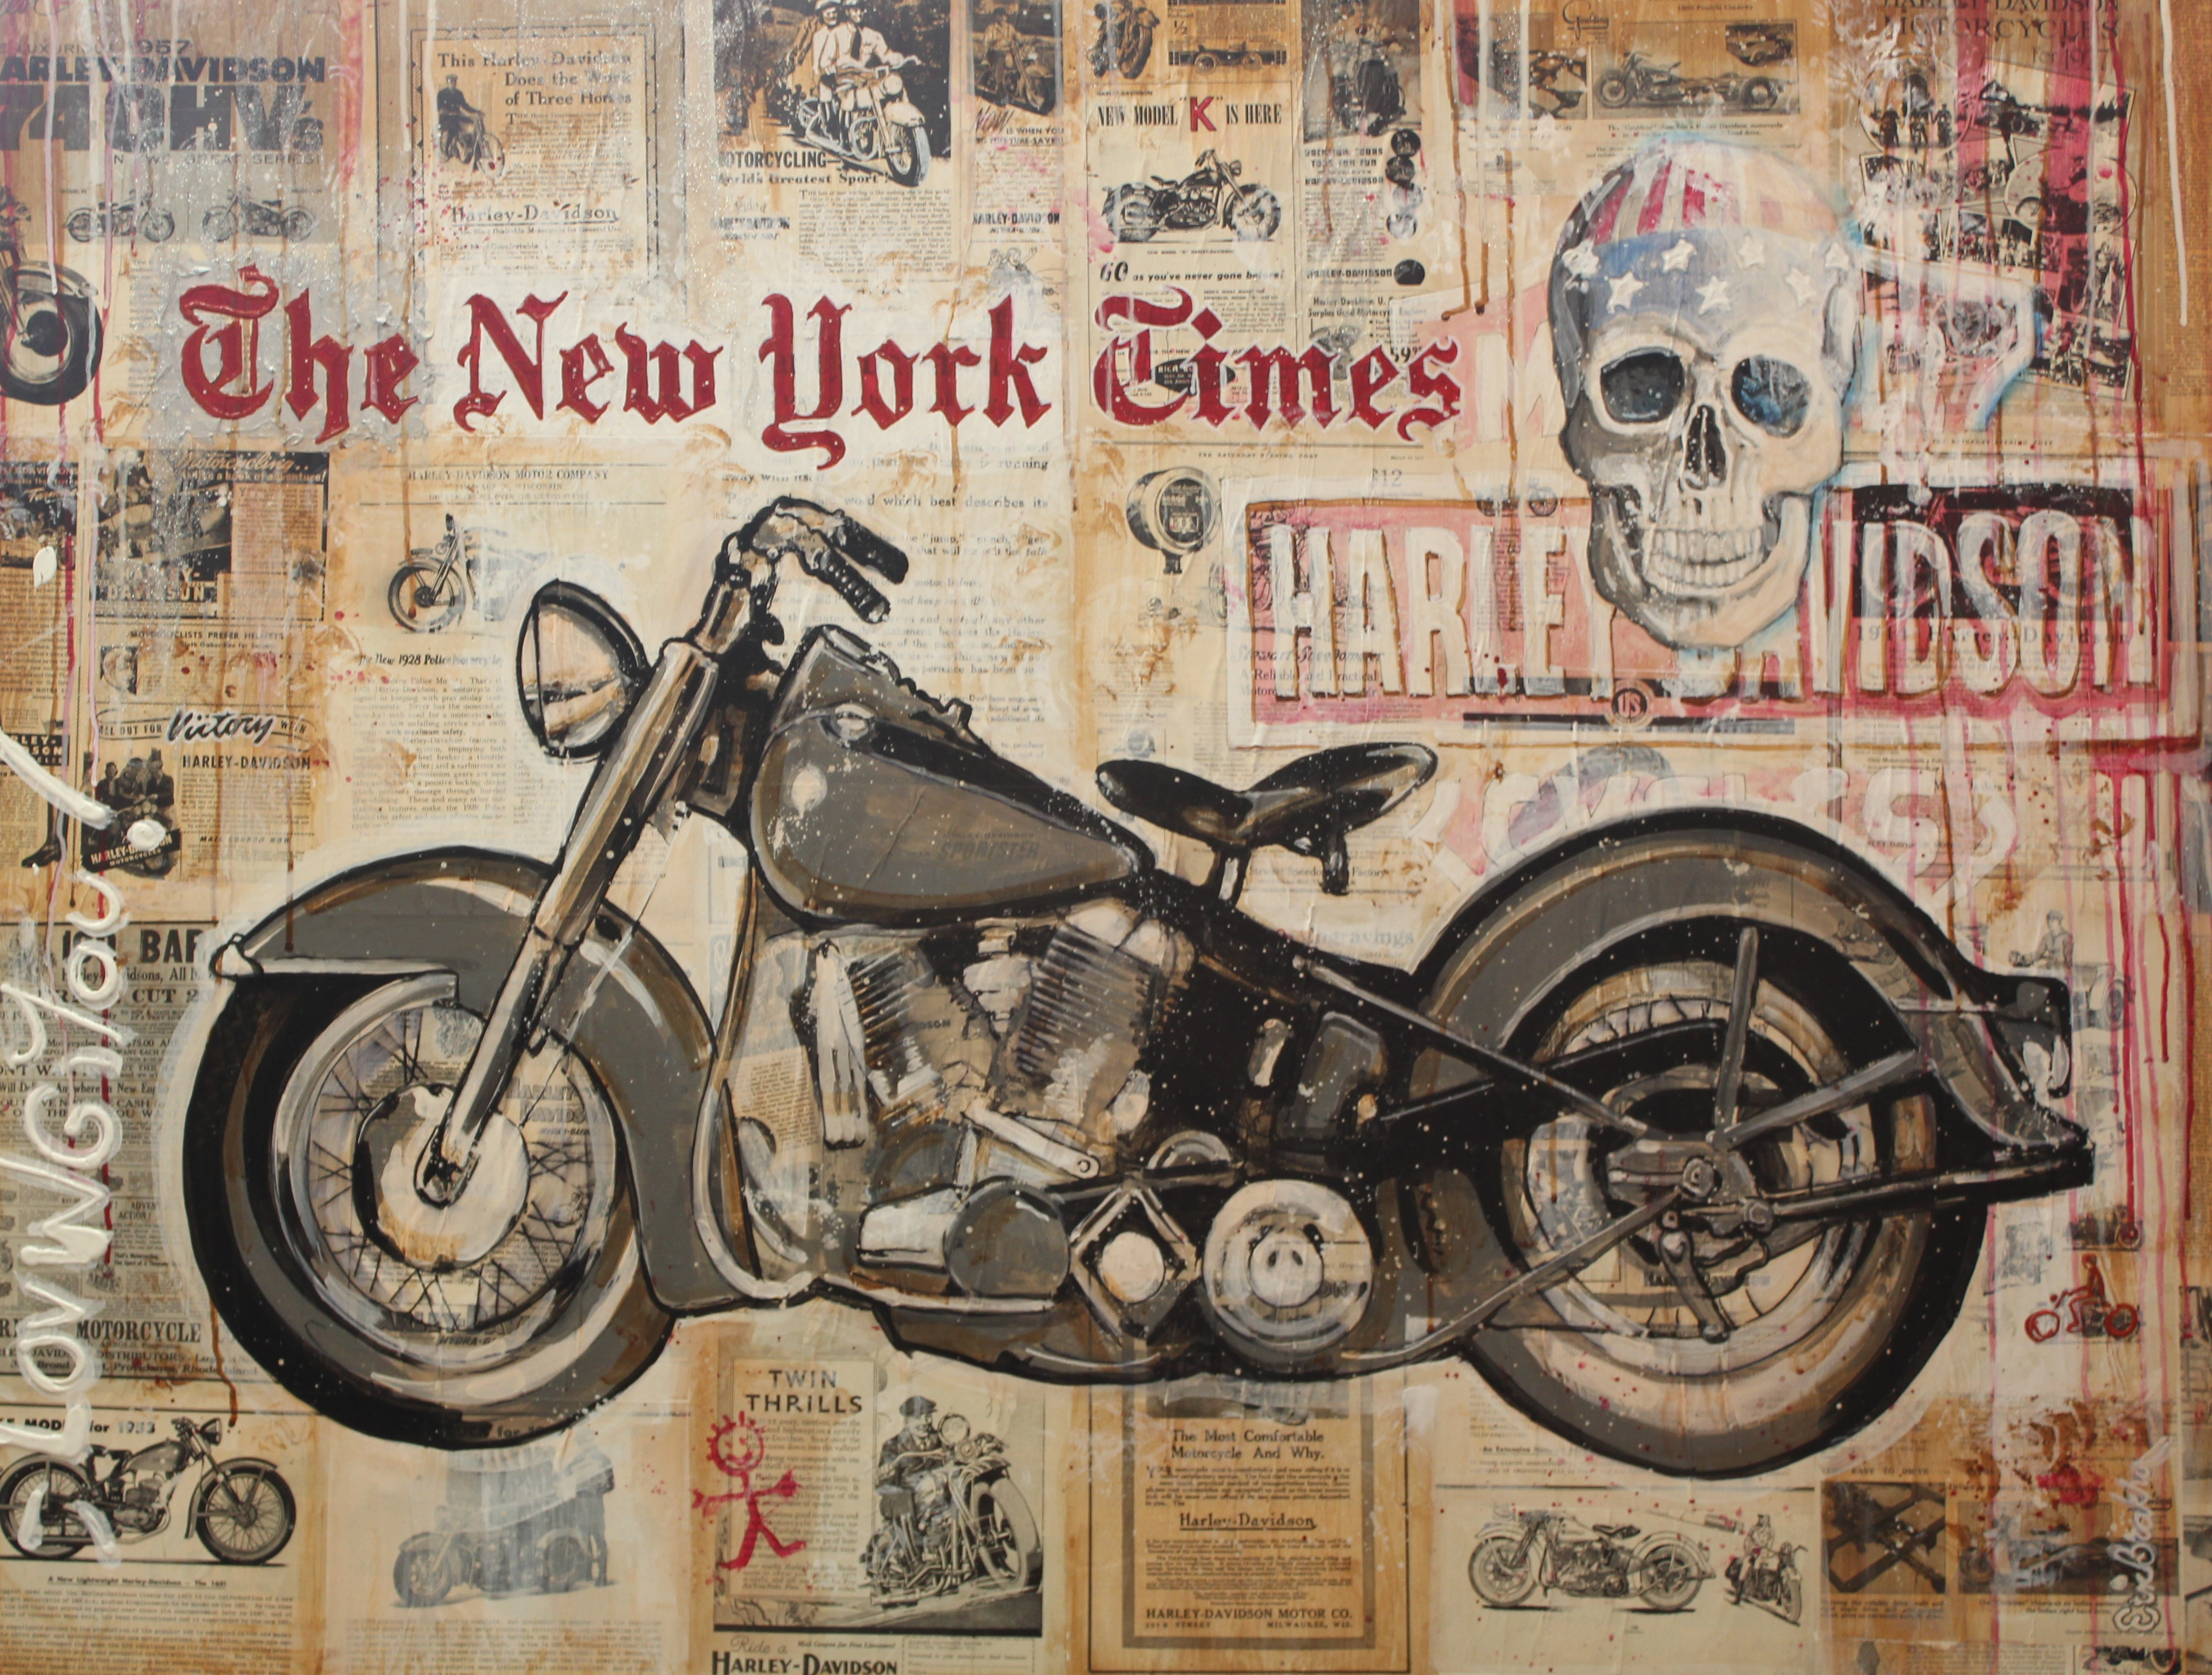 harley davidson mix collage acrylic 130x100 sold